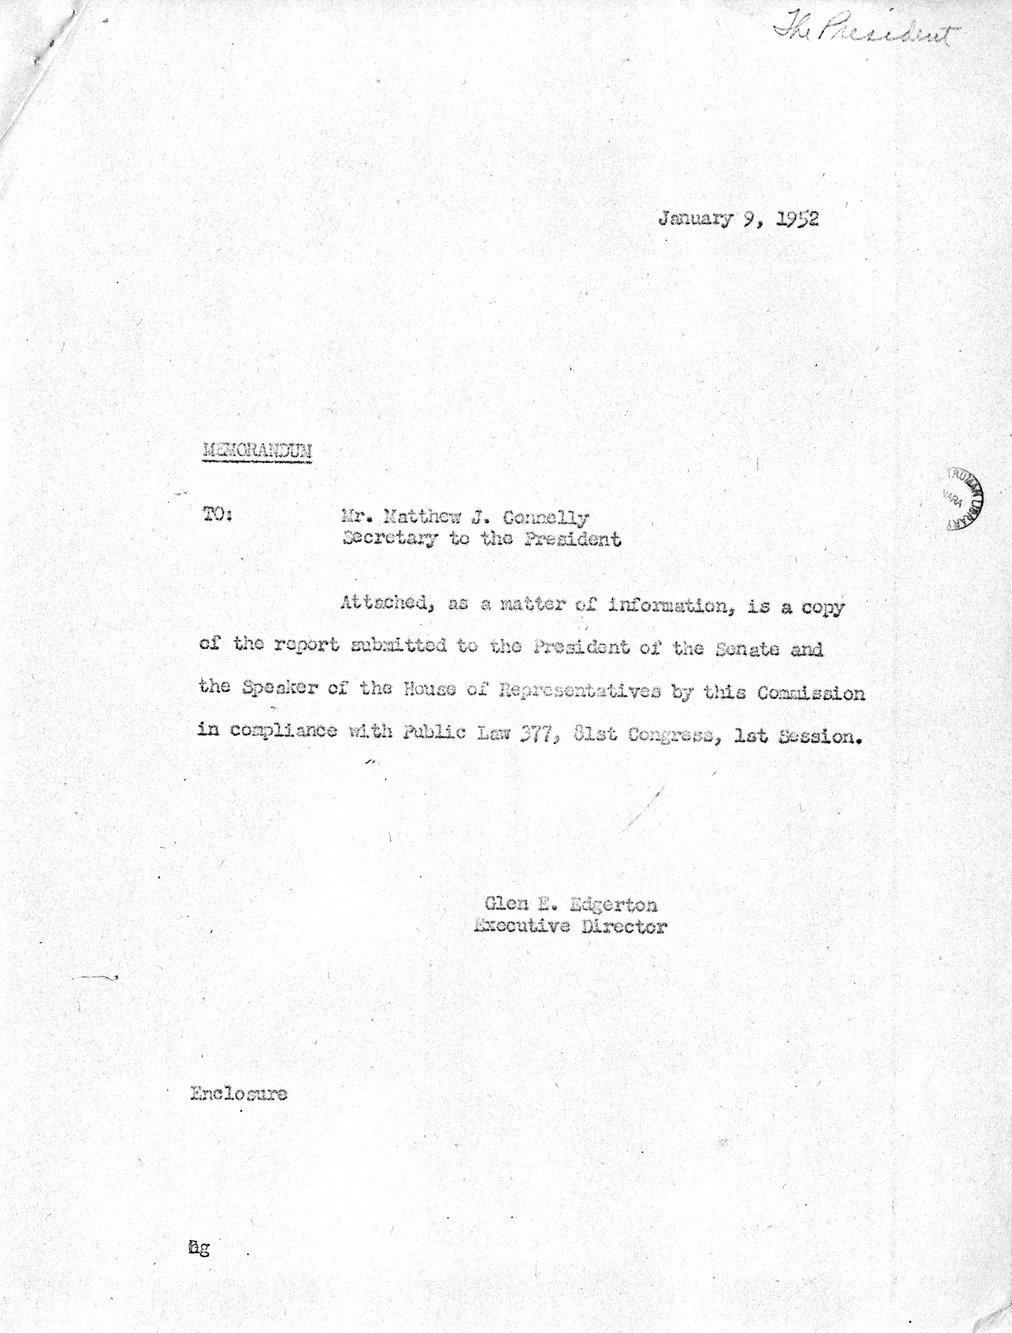 Memorandum from Major General Glen E. Edgerton to Mr. Matthew J. Connelly, with Attachment